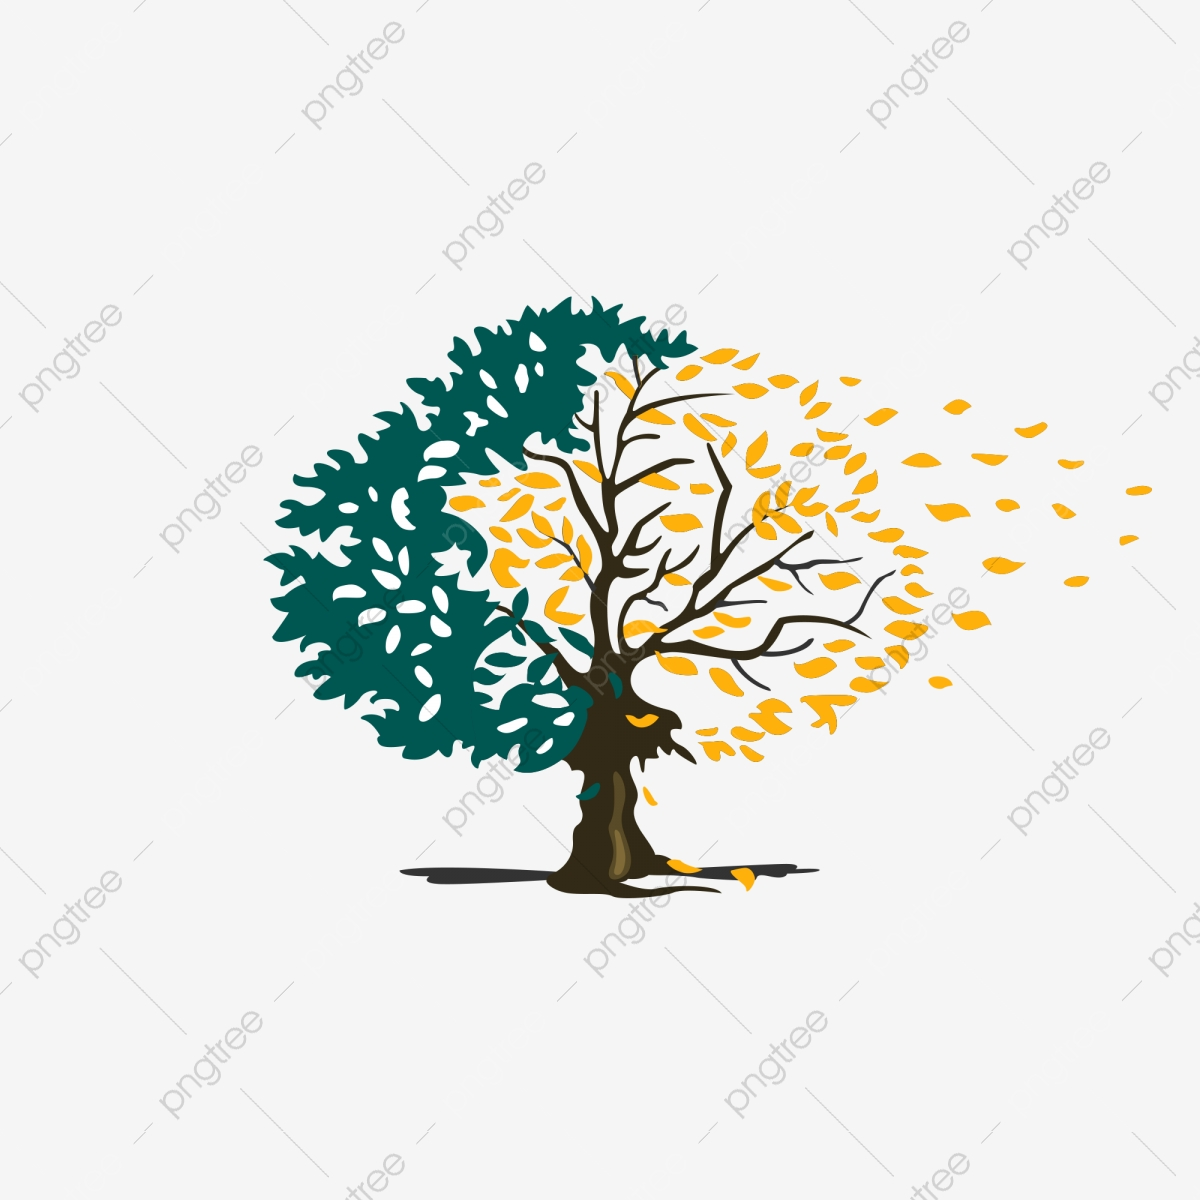 A Bodhi Tree Image Material, Tree Clipart, A Tree, Bodhi Tree PNG.